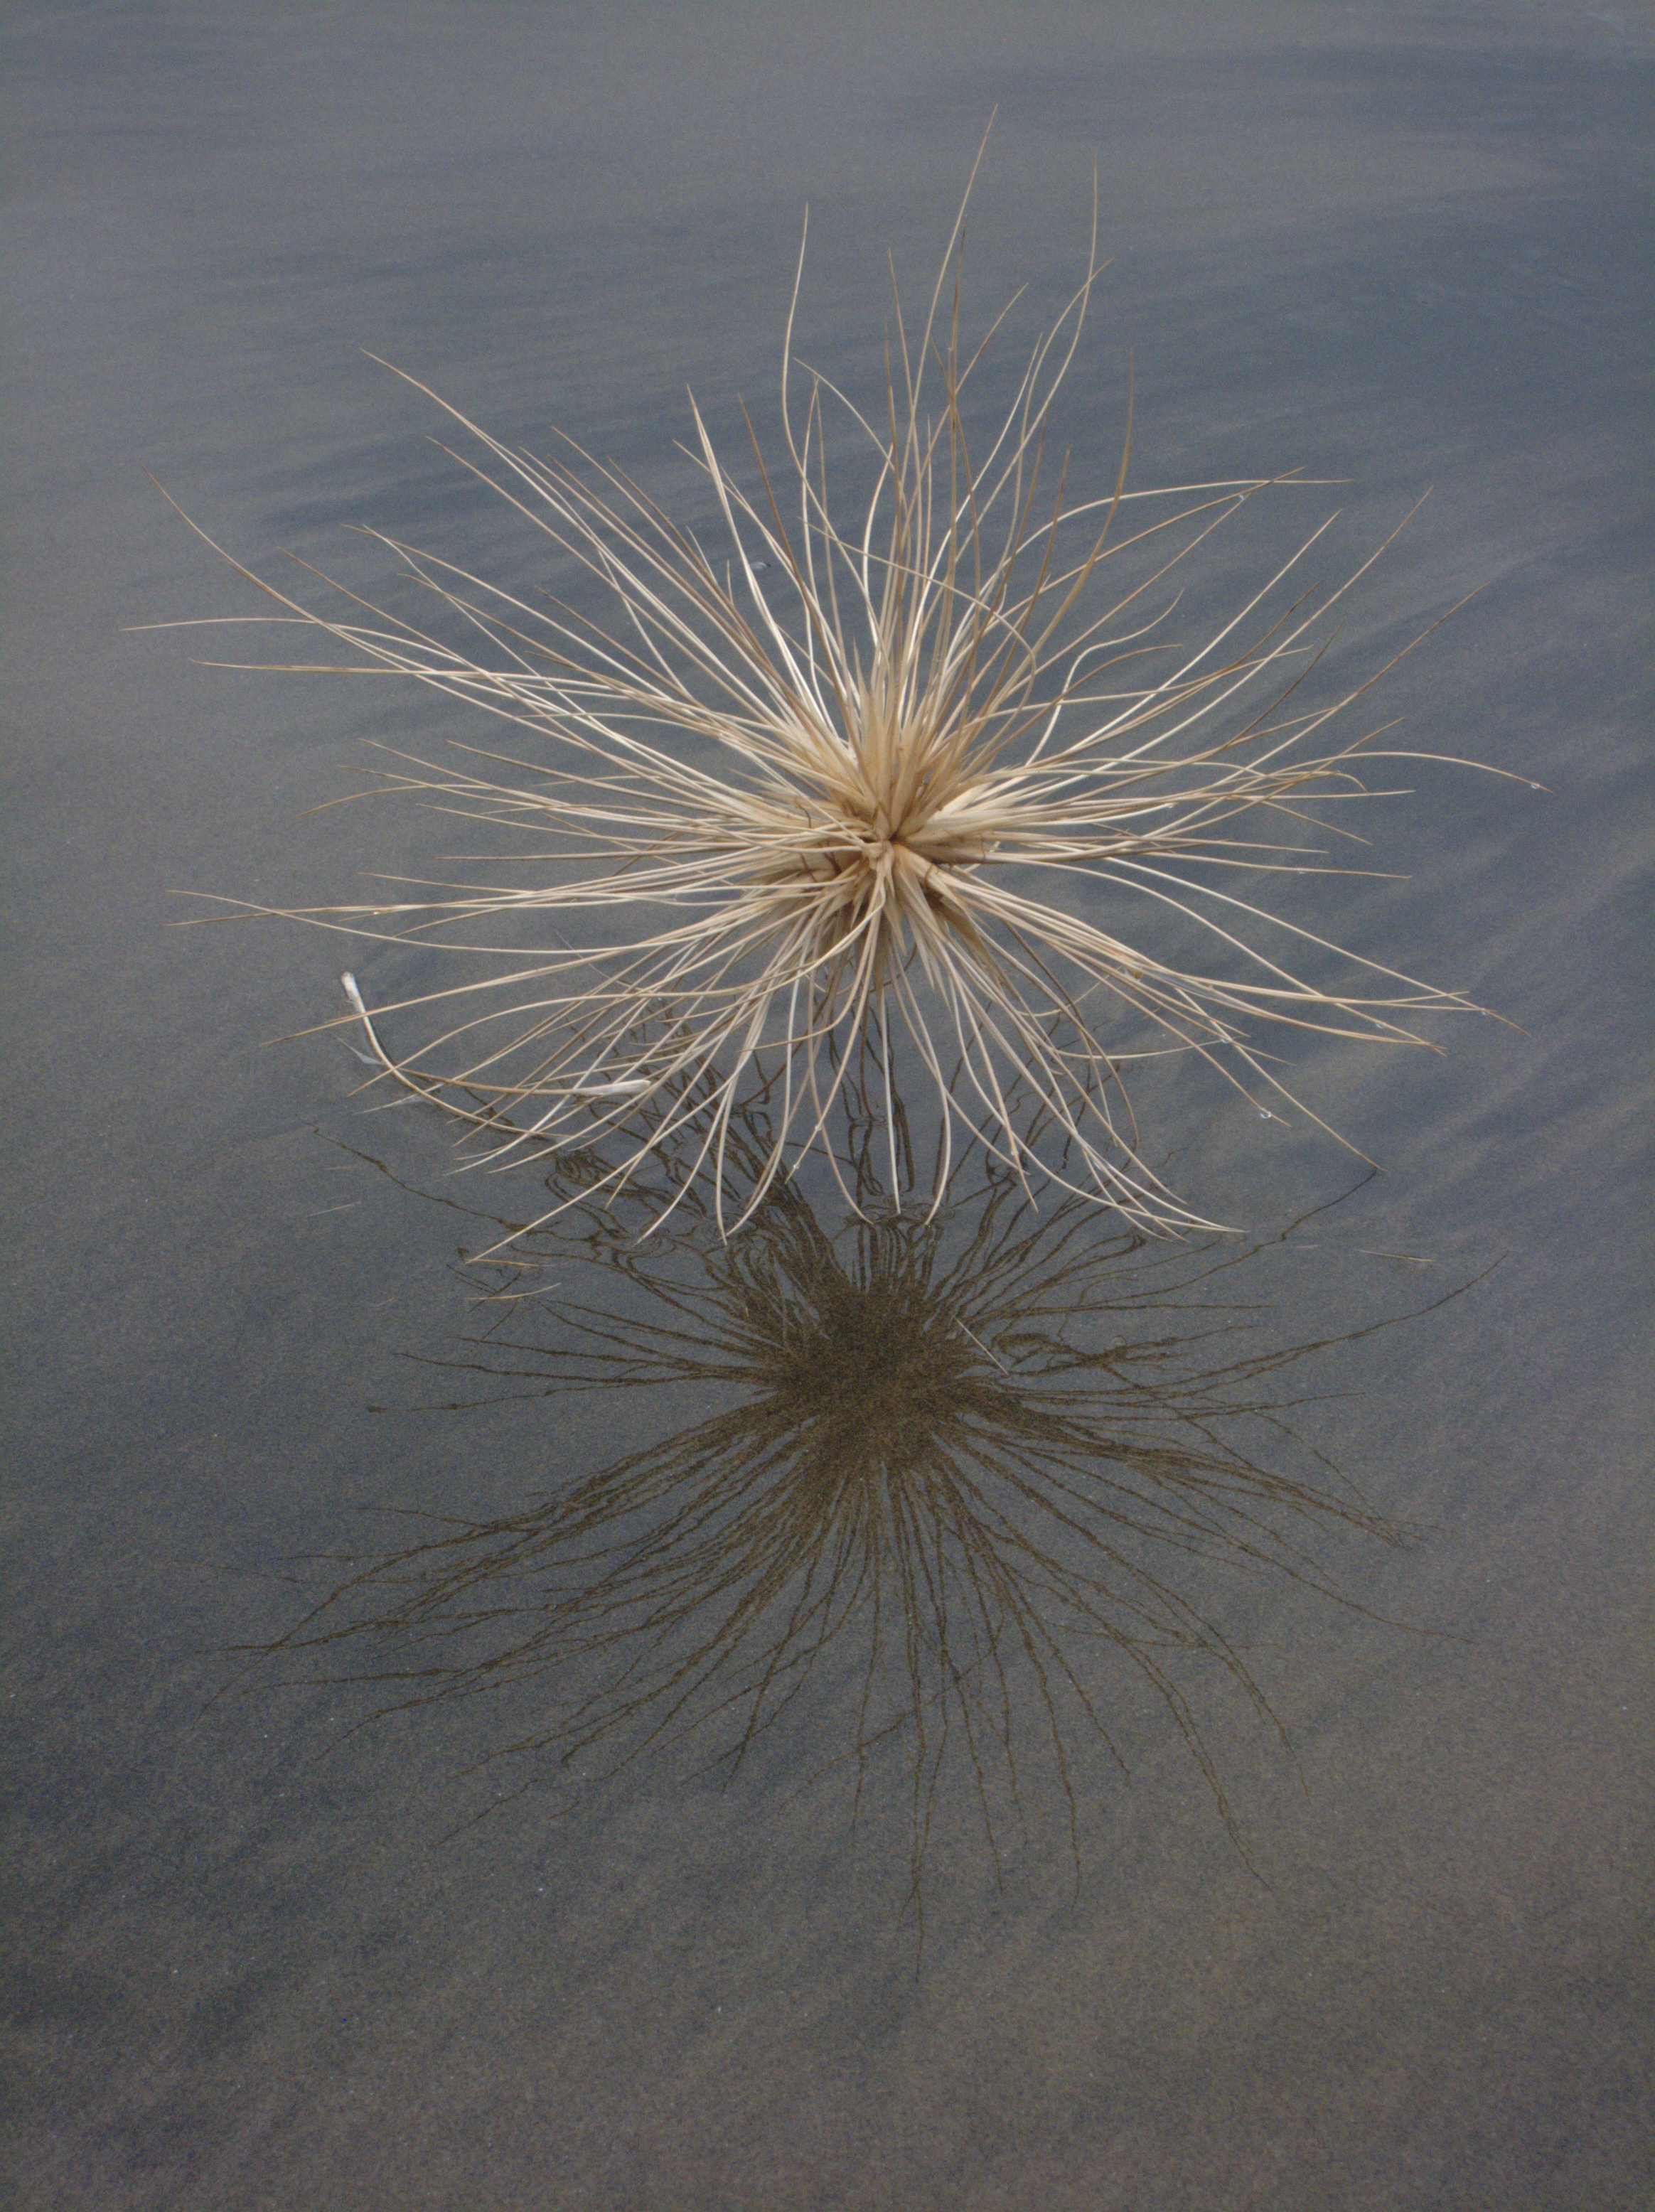 https://i2.wp.com/upload.wikimedia.org/wikipedia/commons/6/6a/Spinifex_sericeus_seed_head.jpg